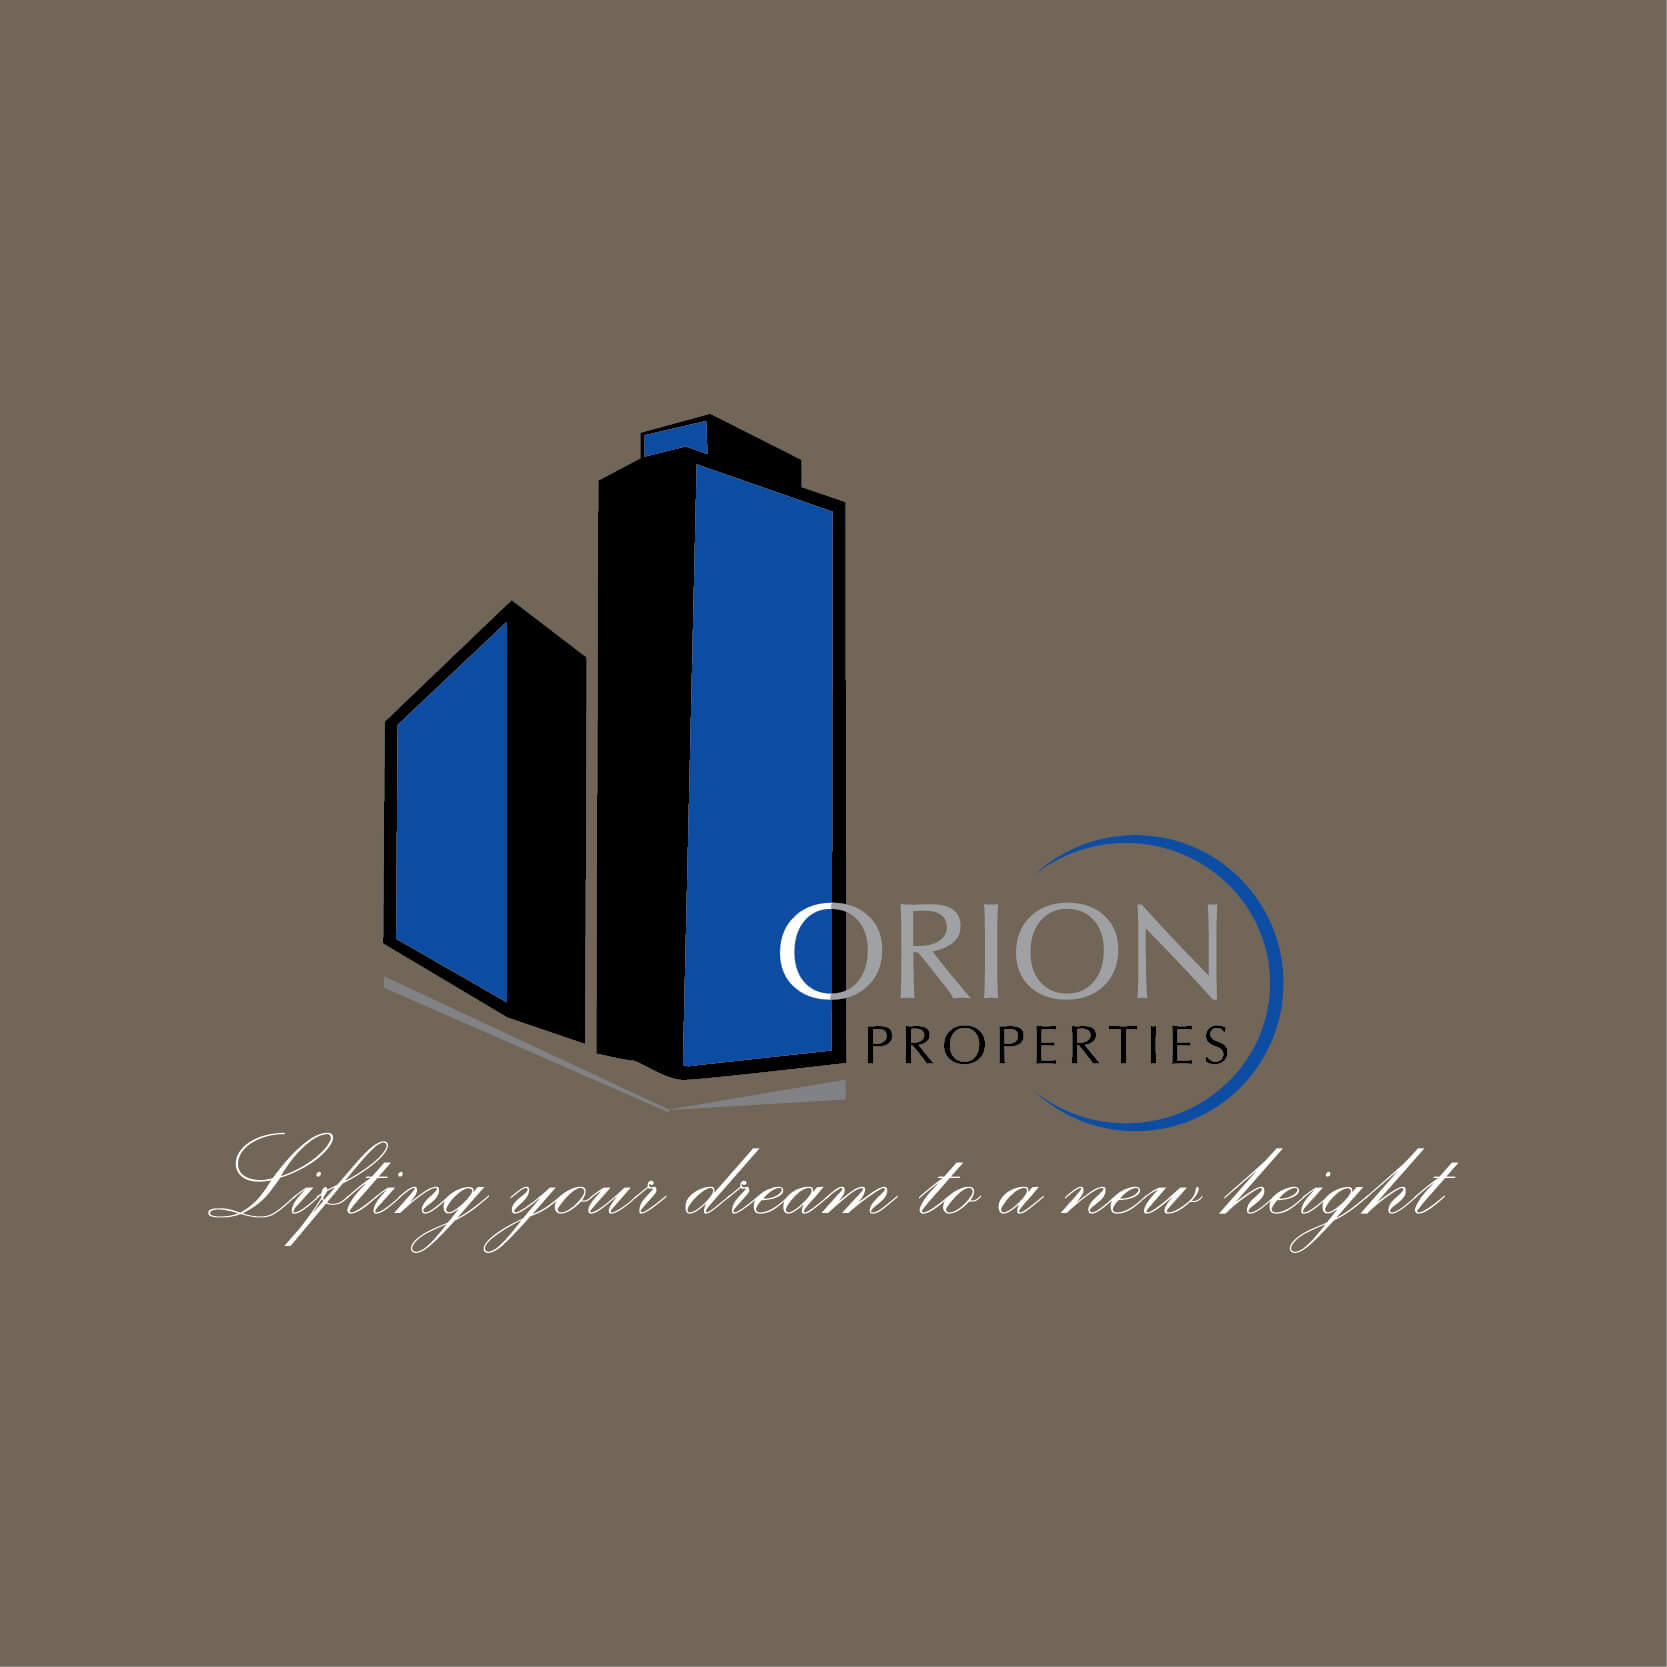 DTC-Clients-Served-Logo-Orion Properties